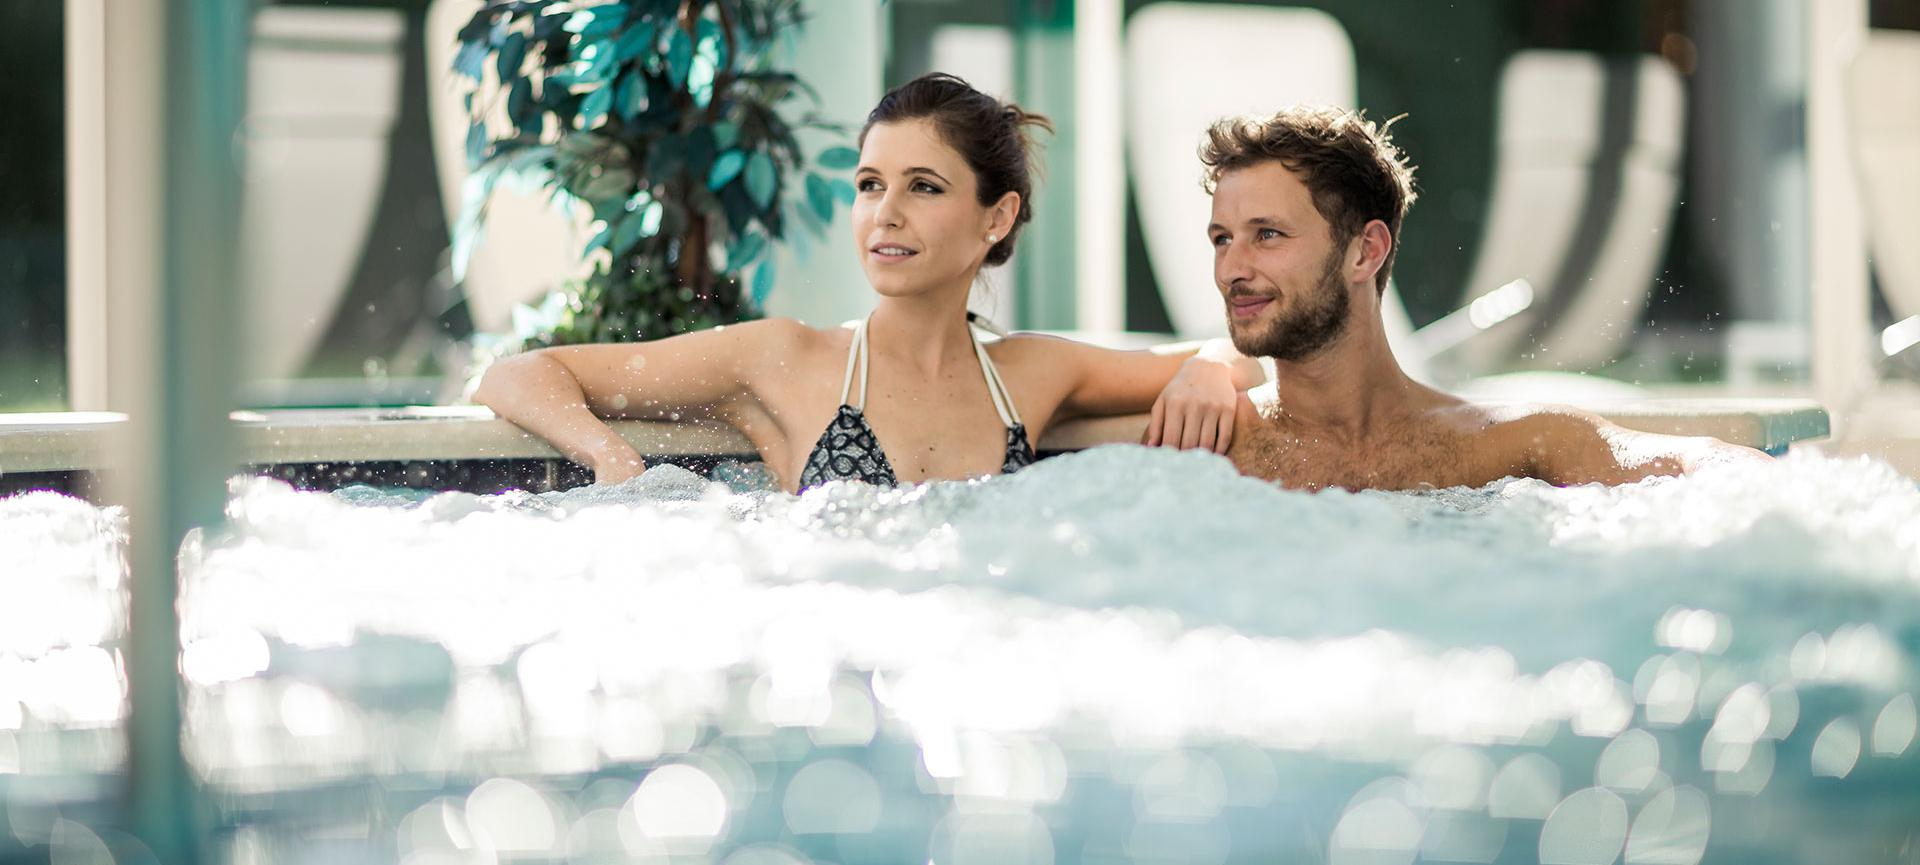 Wellness & SPA im Hotel Jager Hans